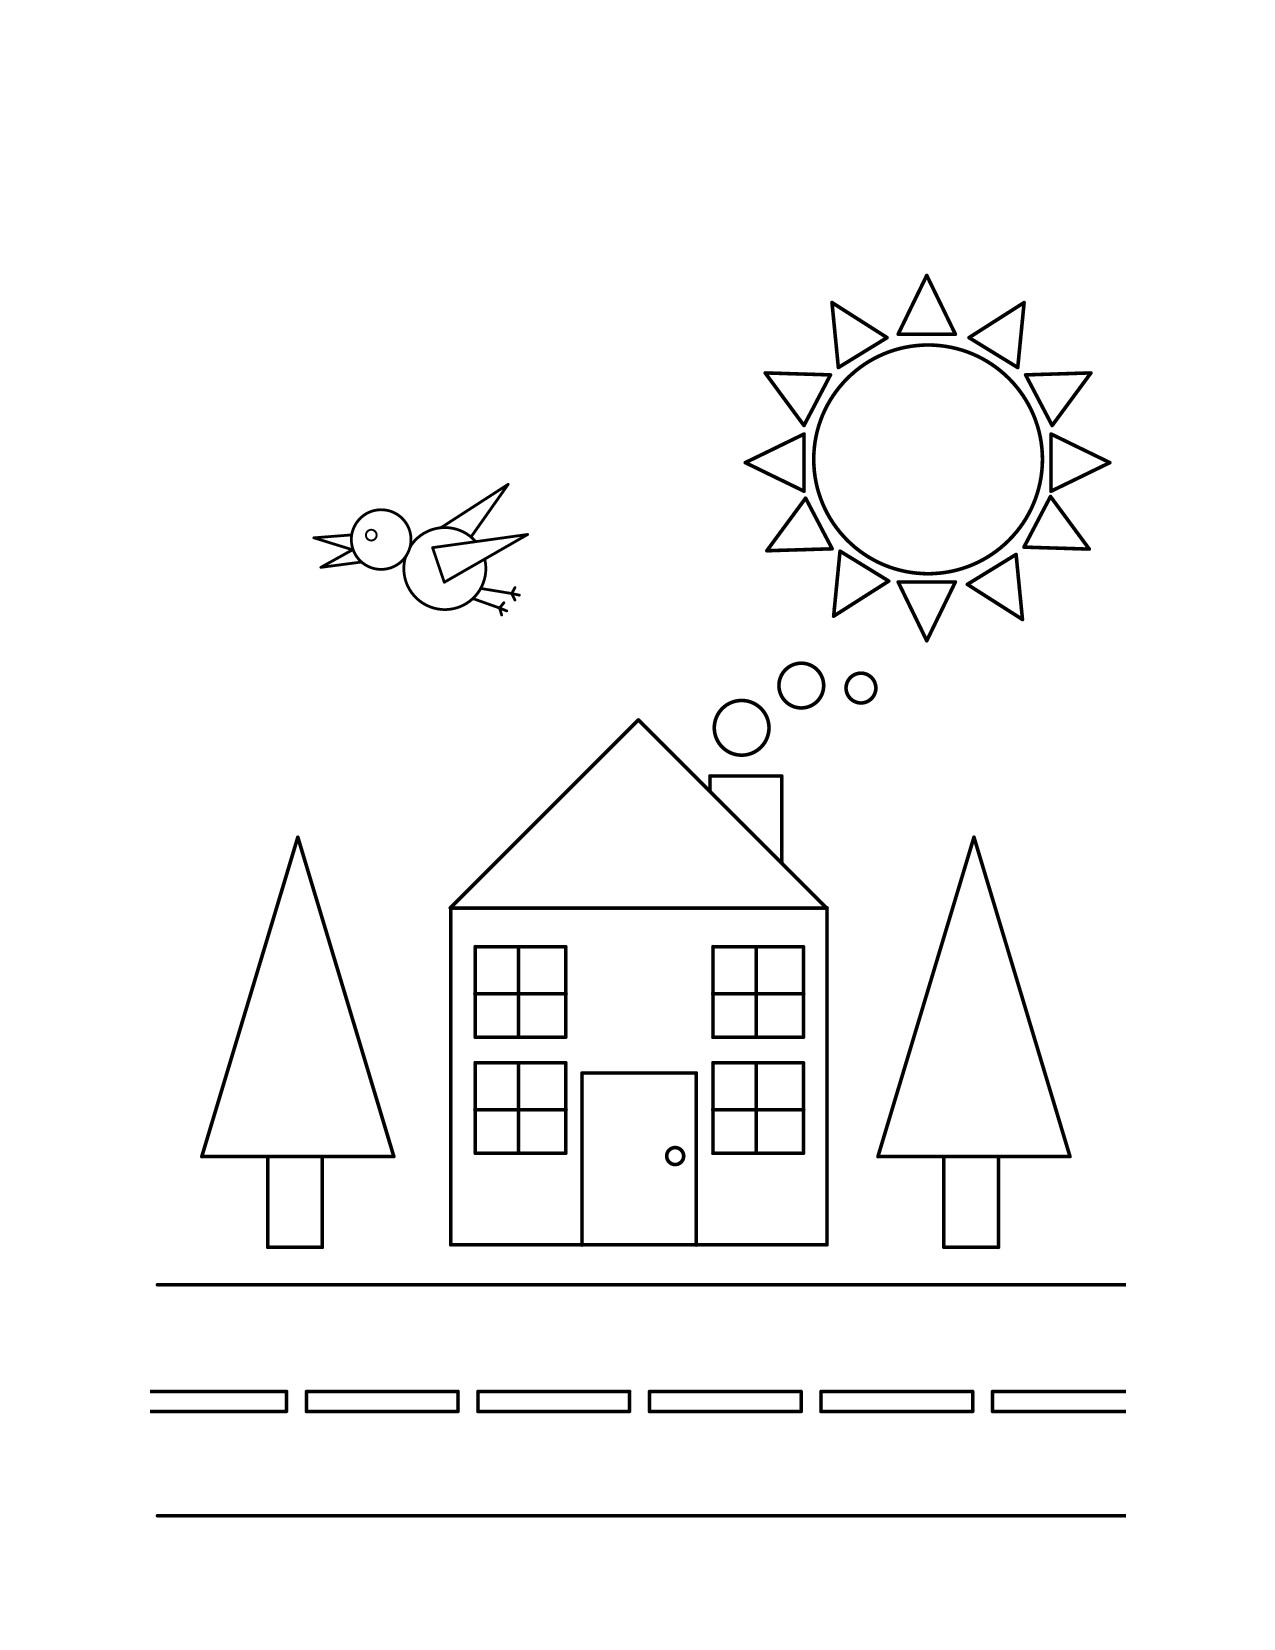 coloring pages with shapes free printable geometric coloring pages for kids coloring with pages shapes